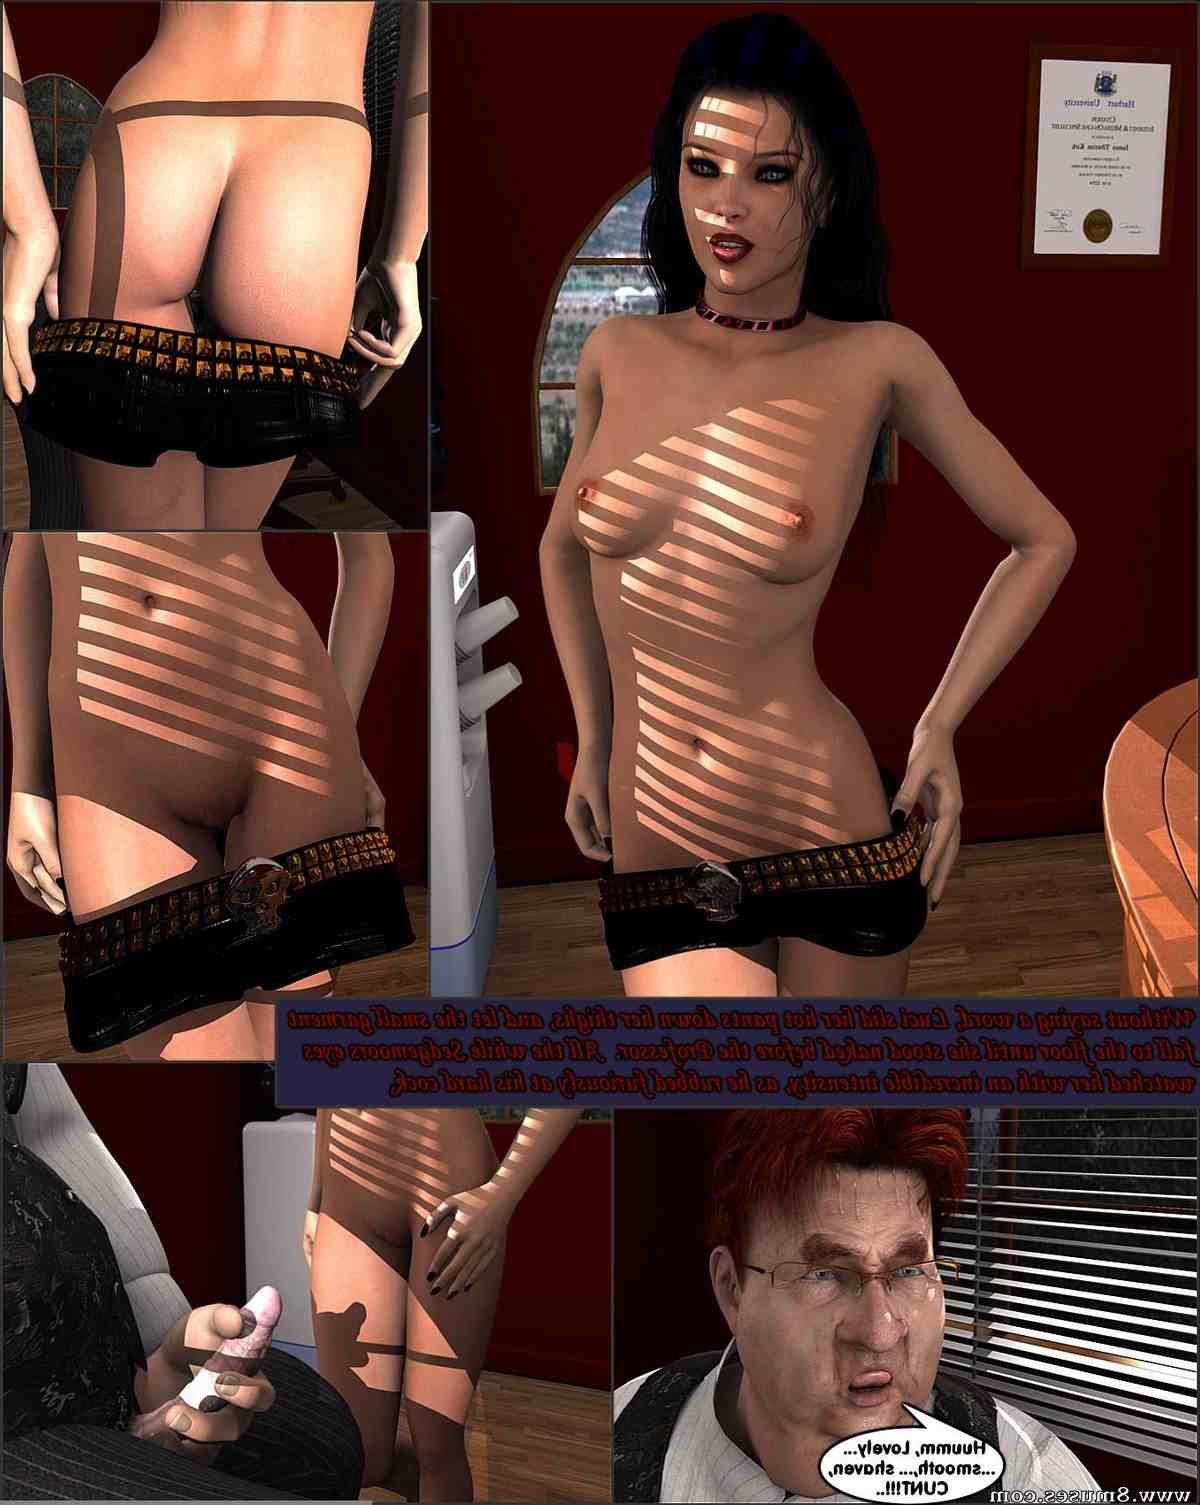 DarkSoul3D-Comics/Monstrous-Tales-Return-To-The-Boardwalk Monstrous_Tales_-_Return_To_The_Boardwalk__8muses_-_Sex_and_Porn_Comics_53.jpg